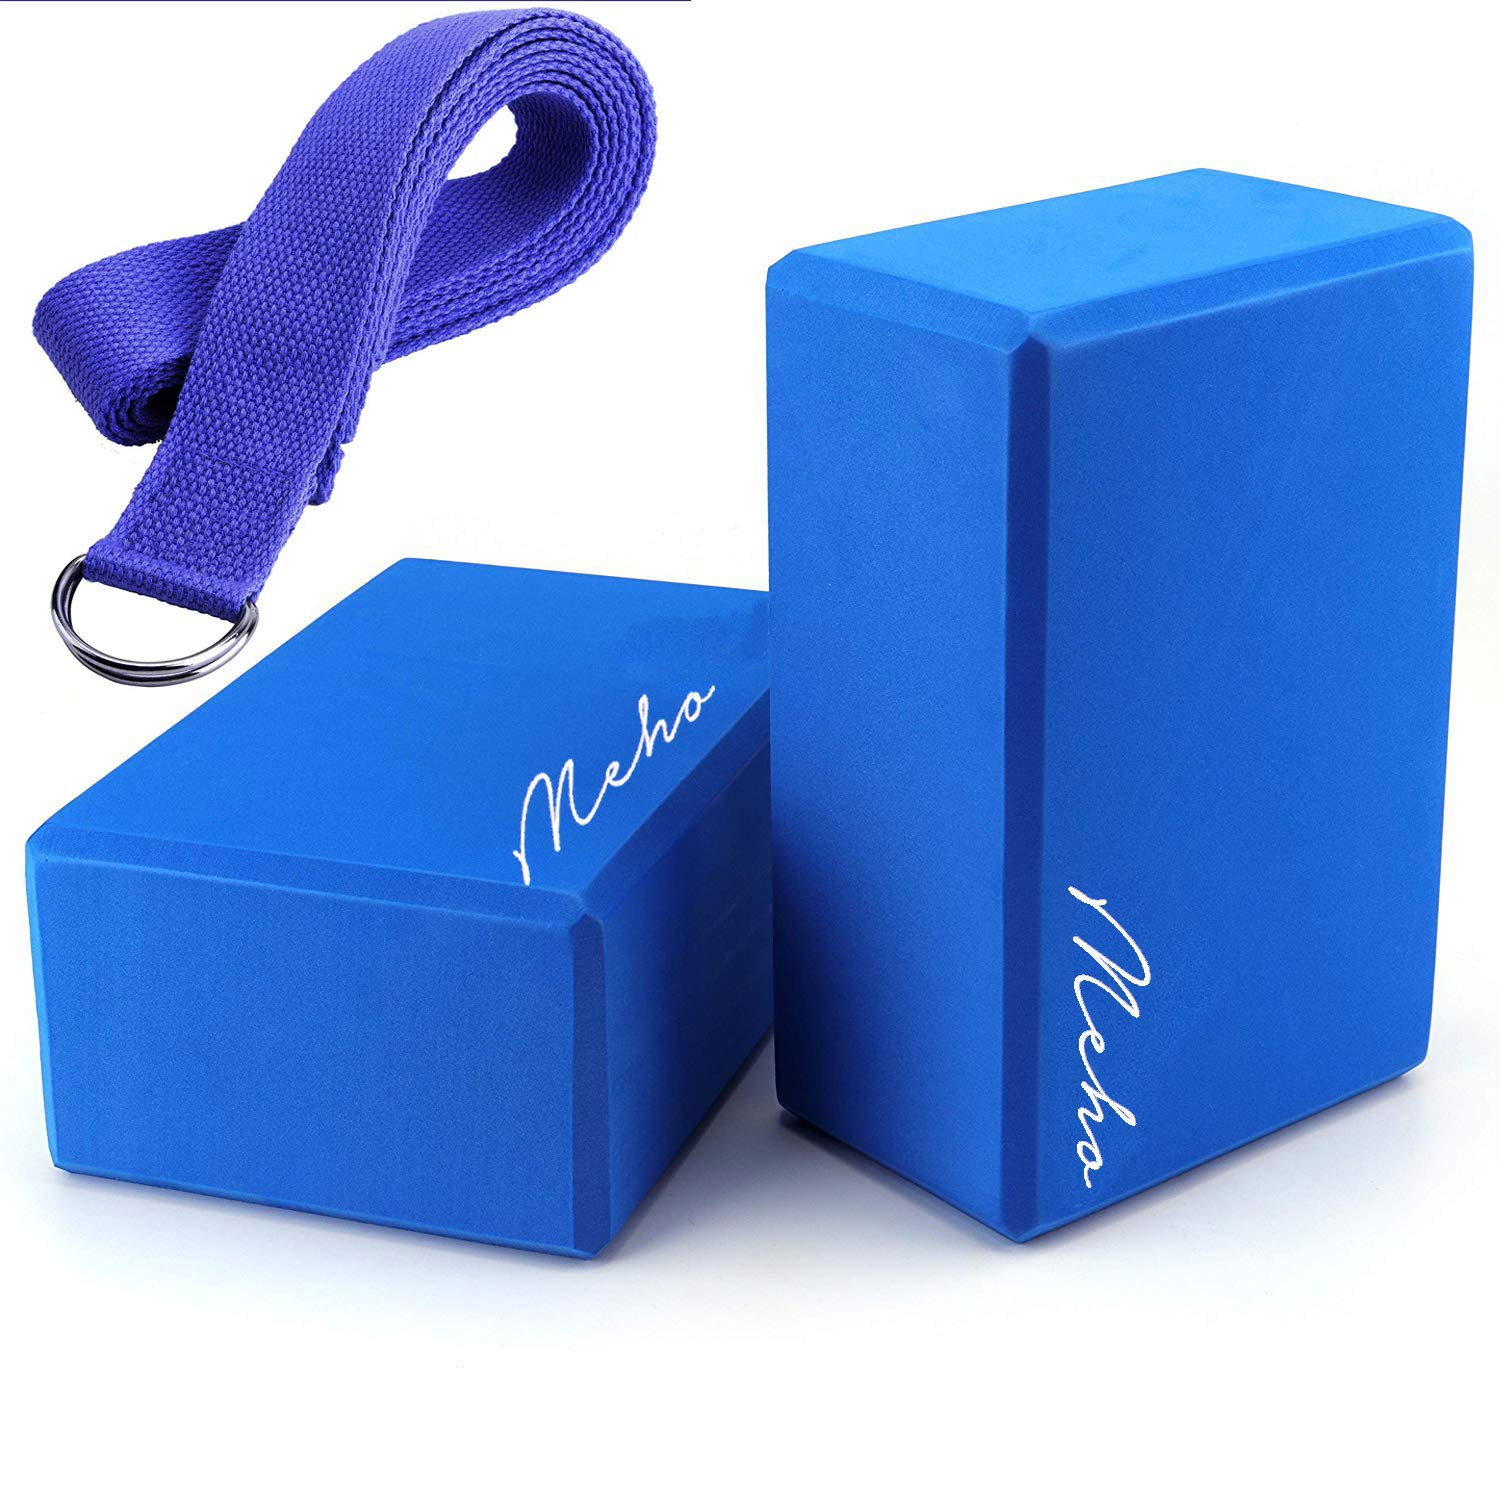 Meho Yoga Block 2 Pack EVA Foam Blocks Support Poses Body Trainning - Set of 2-9x6x4 Inch